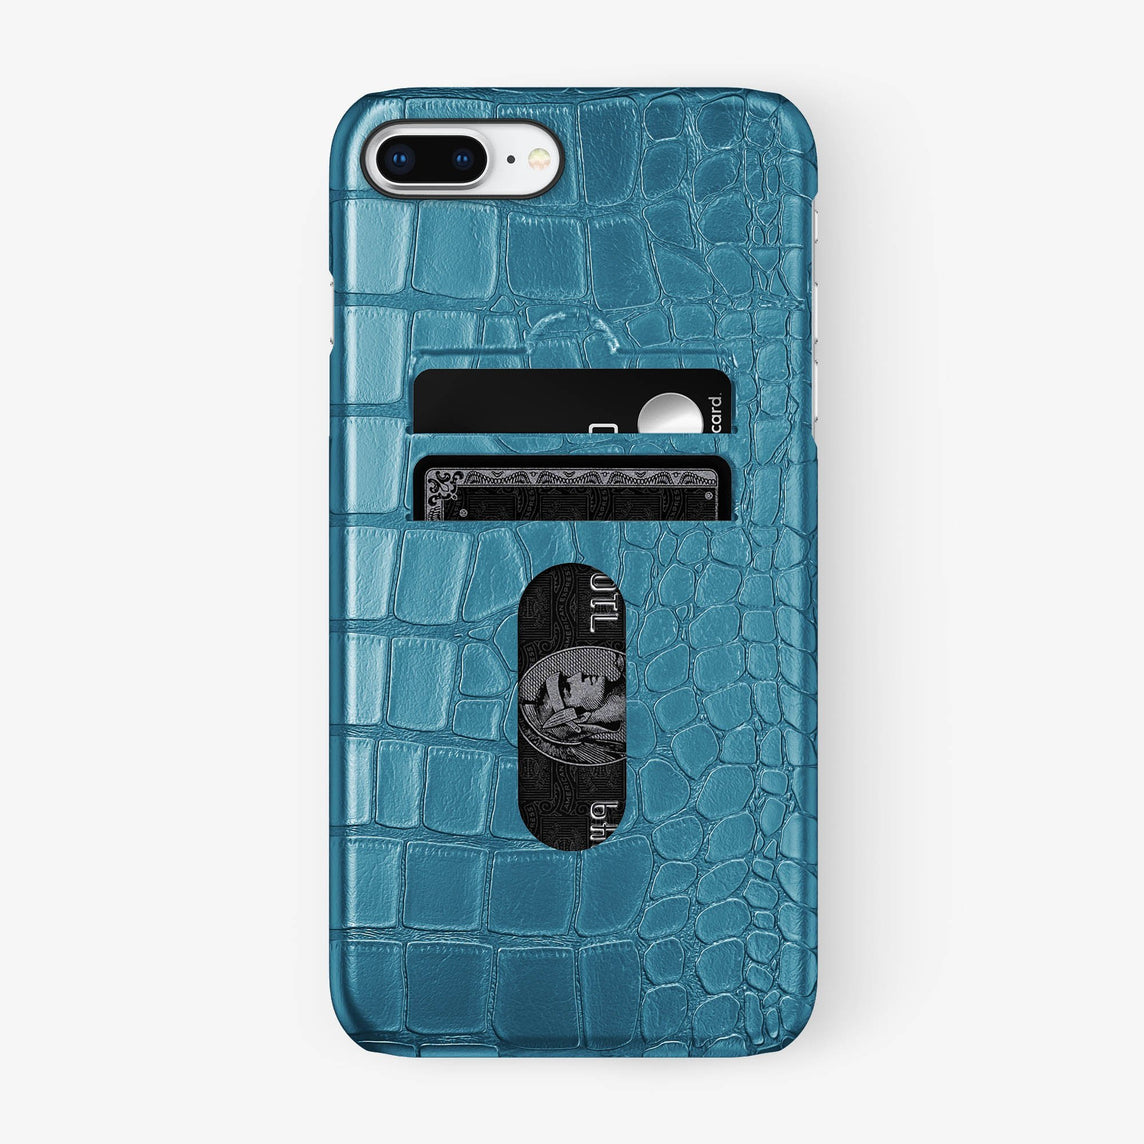 Alligator Card Holder Case iPhone 7/8 Plus | Teal - Black